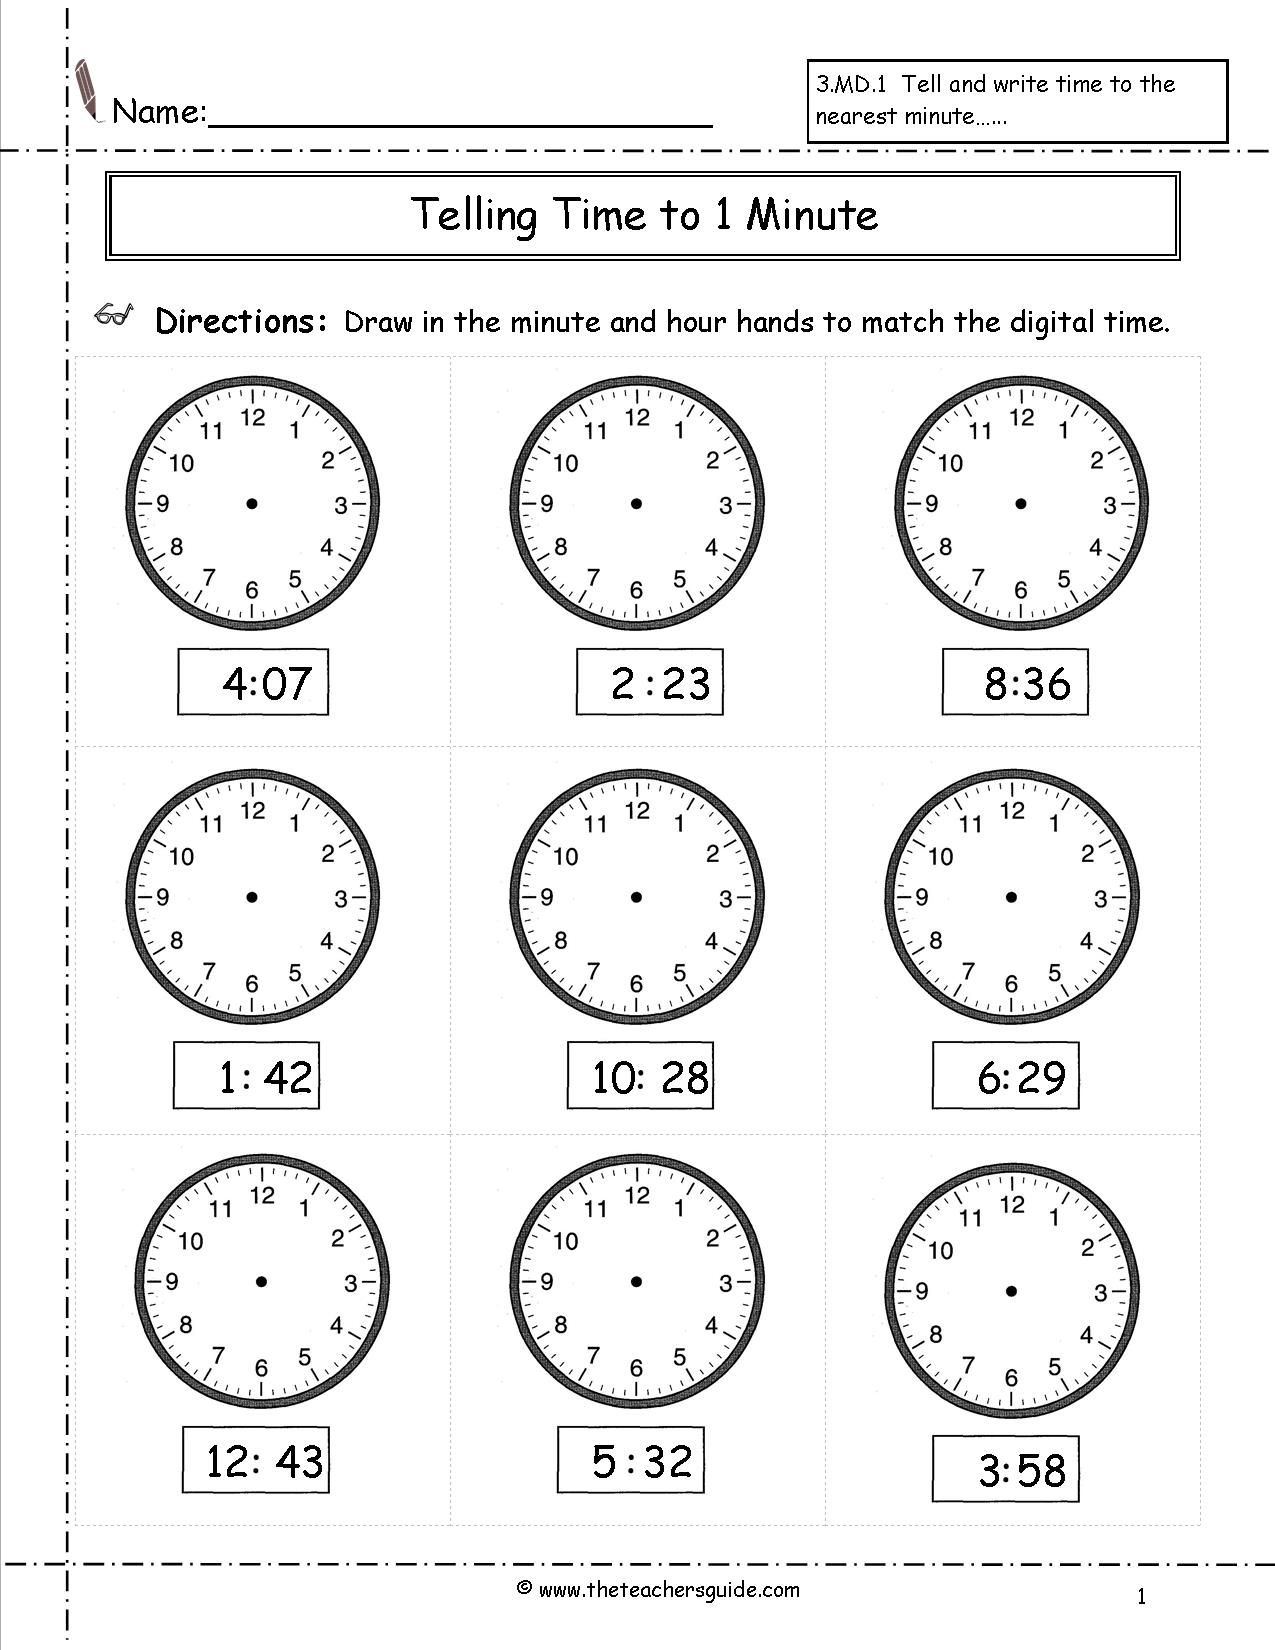 Worksheets Worksheets For Telling Time telling time worksheets from the teachers guide math ideas guide